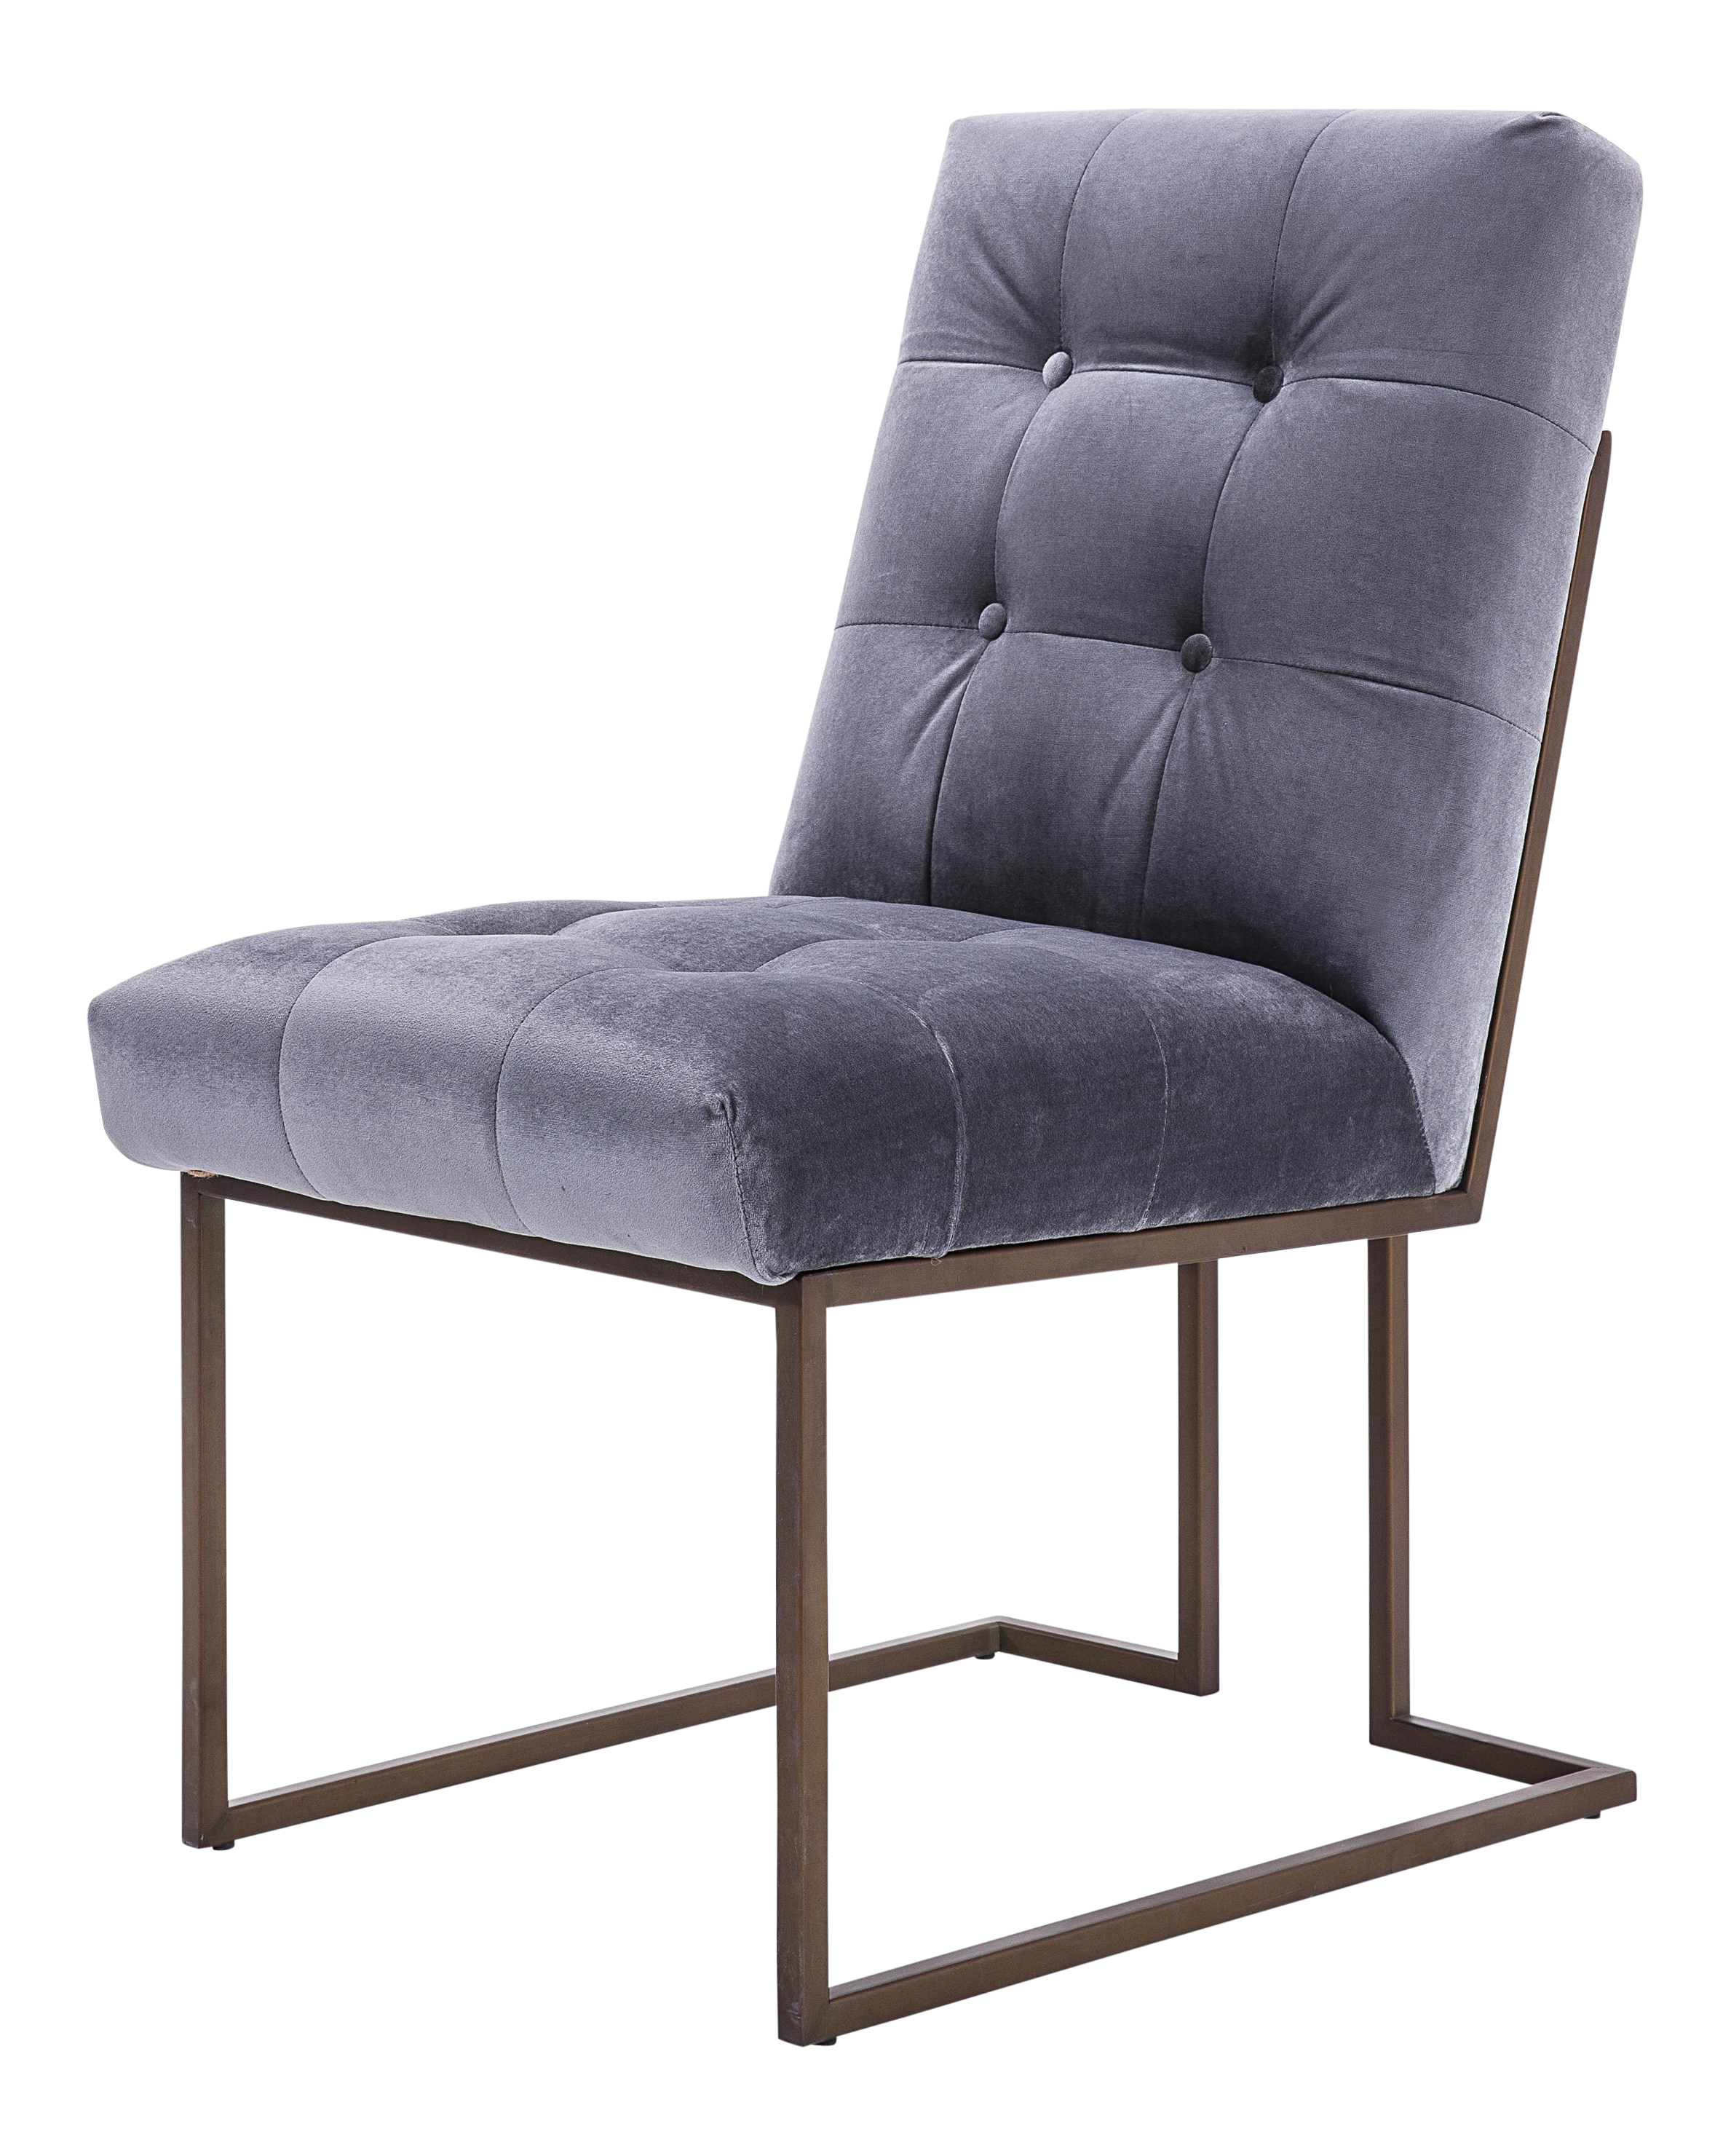 Blink Home Dining Chair Chairish